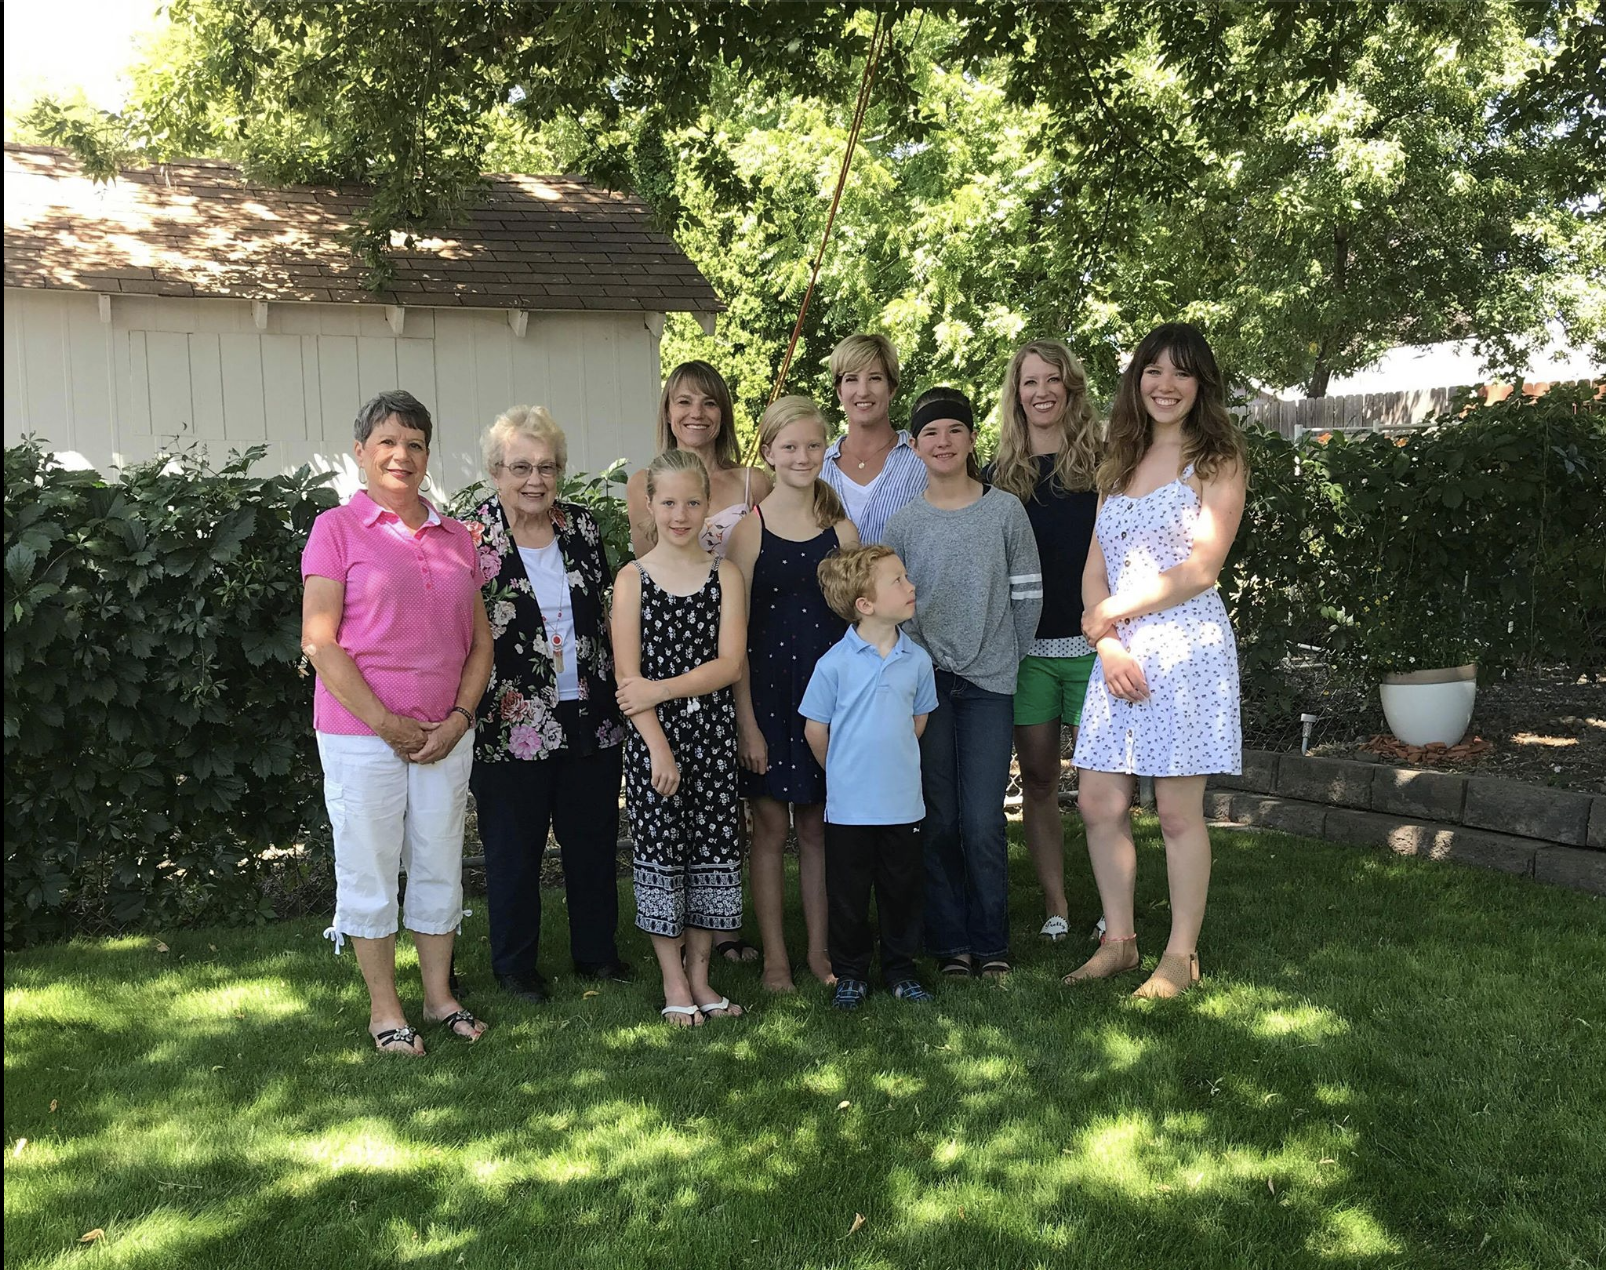 There are 4 generations in this photo! Me and my 2 sisters, our Mom, our grandmother, my 3 children and my sister's 2 children.